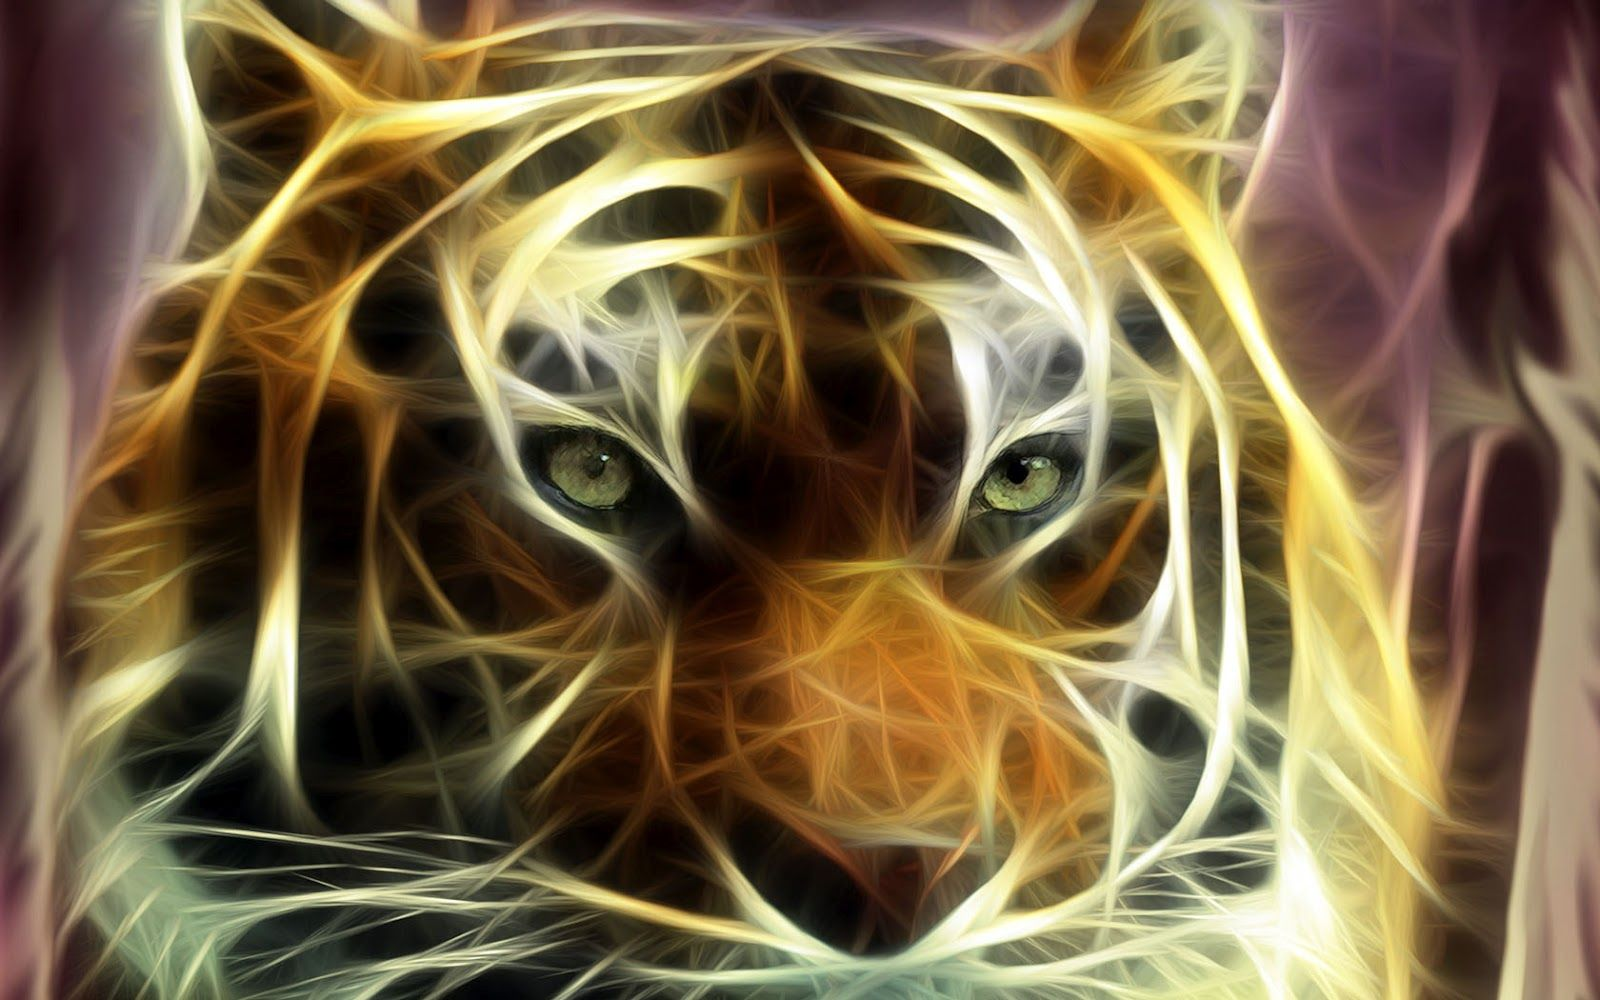 Art animals wallpapers a tigerz art pinterest animal wallpaper art animals wallpapers thecheapjerseys Gallery